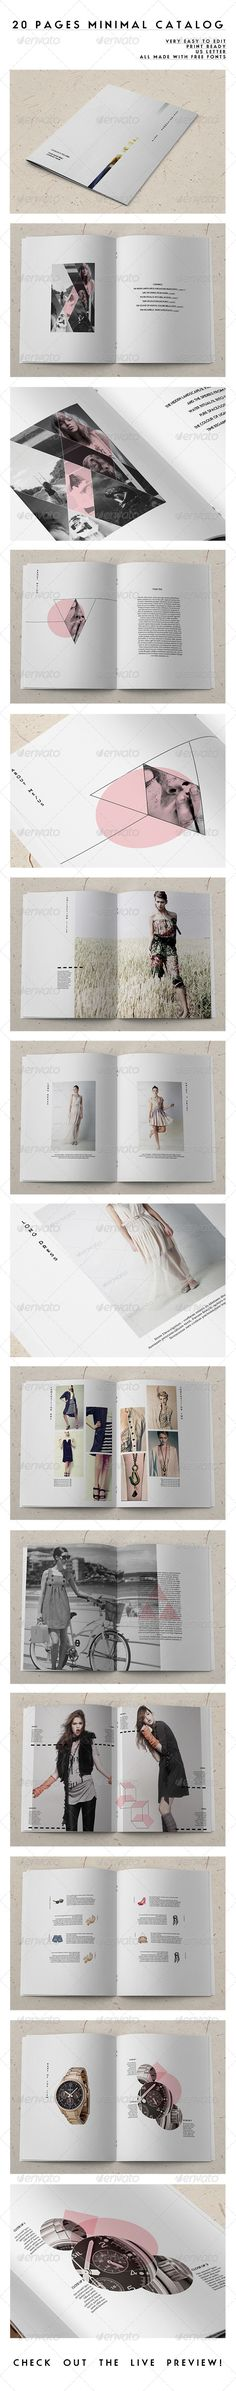 Another layout that is very clean and minimal. For a product magazine I like the perspectives they showed for the certain products instead of showing regular stock pictures. The abstractness of this catalog is appealing.